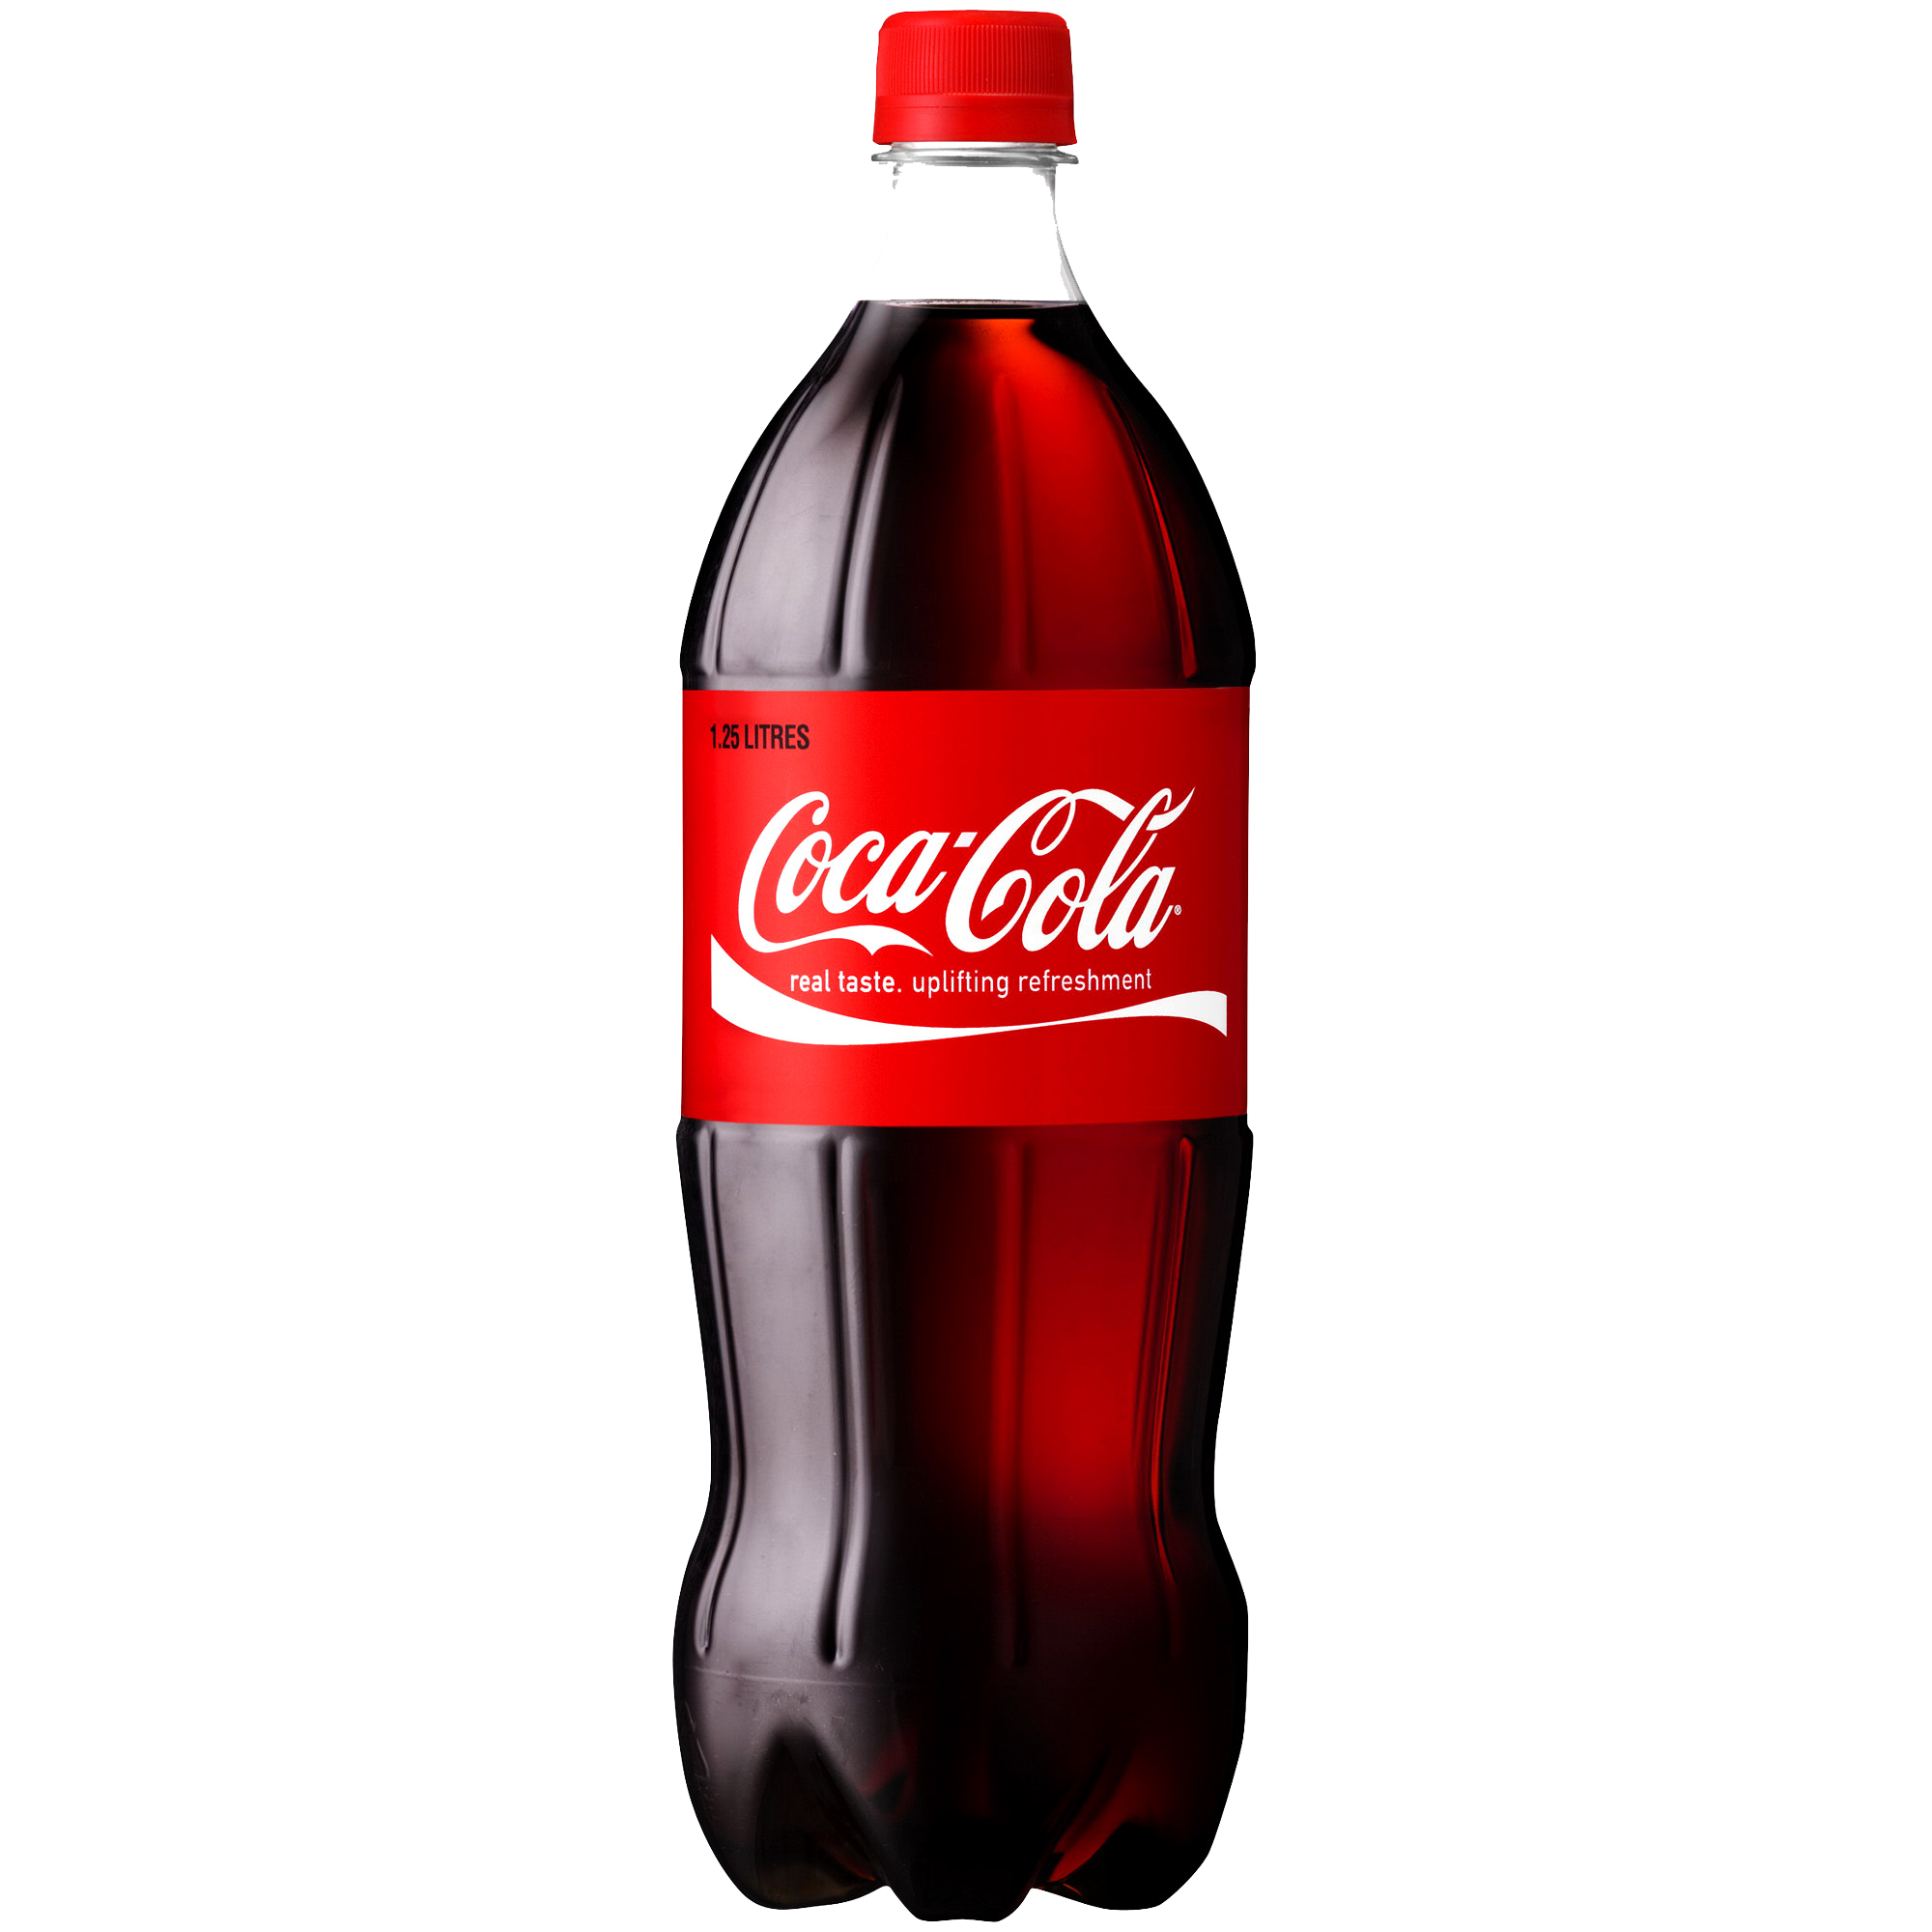 Best coca cola drawing. Drink clipart refreshments